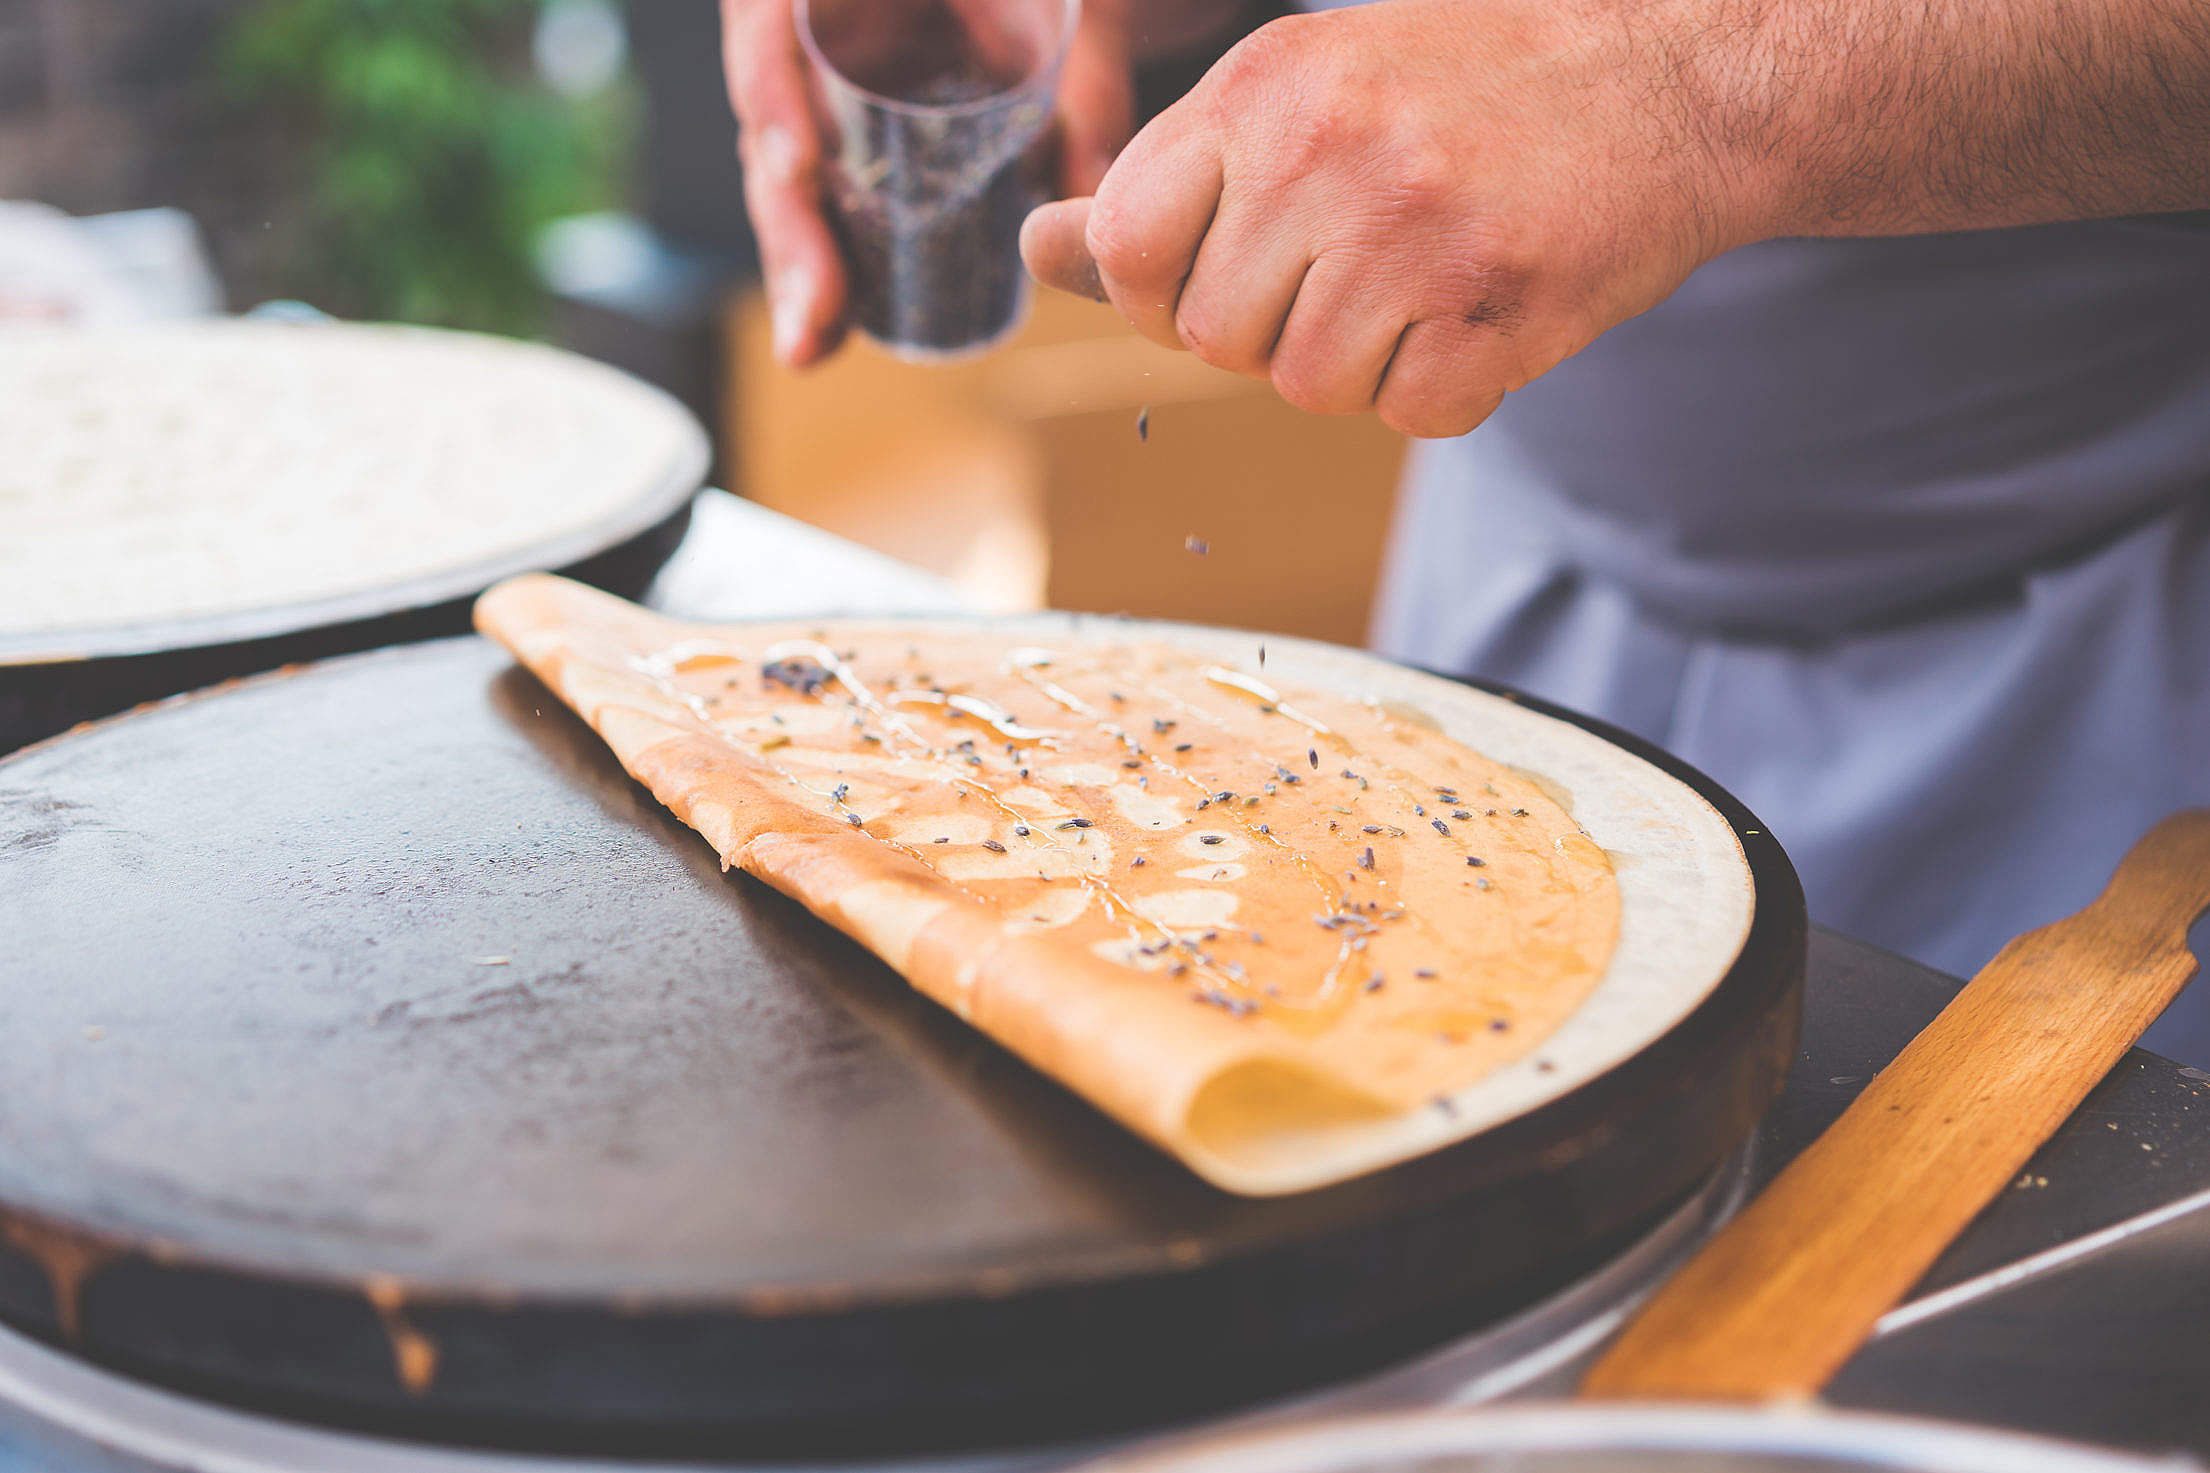 Old Man Making Healthy Crepes in Open Air Market Free Stock Photo